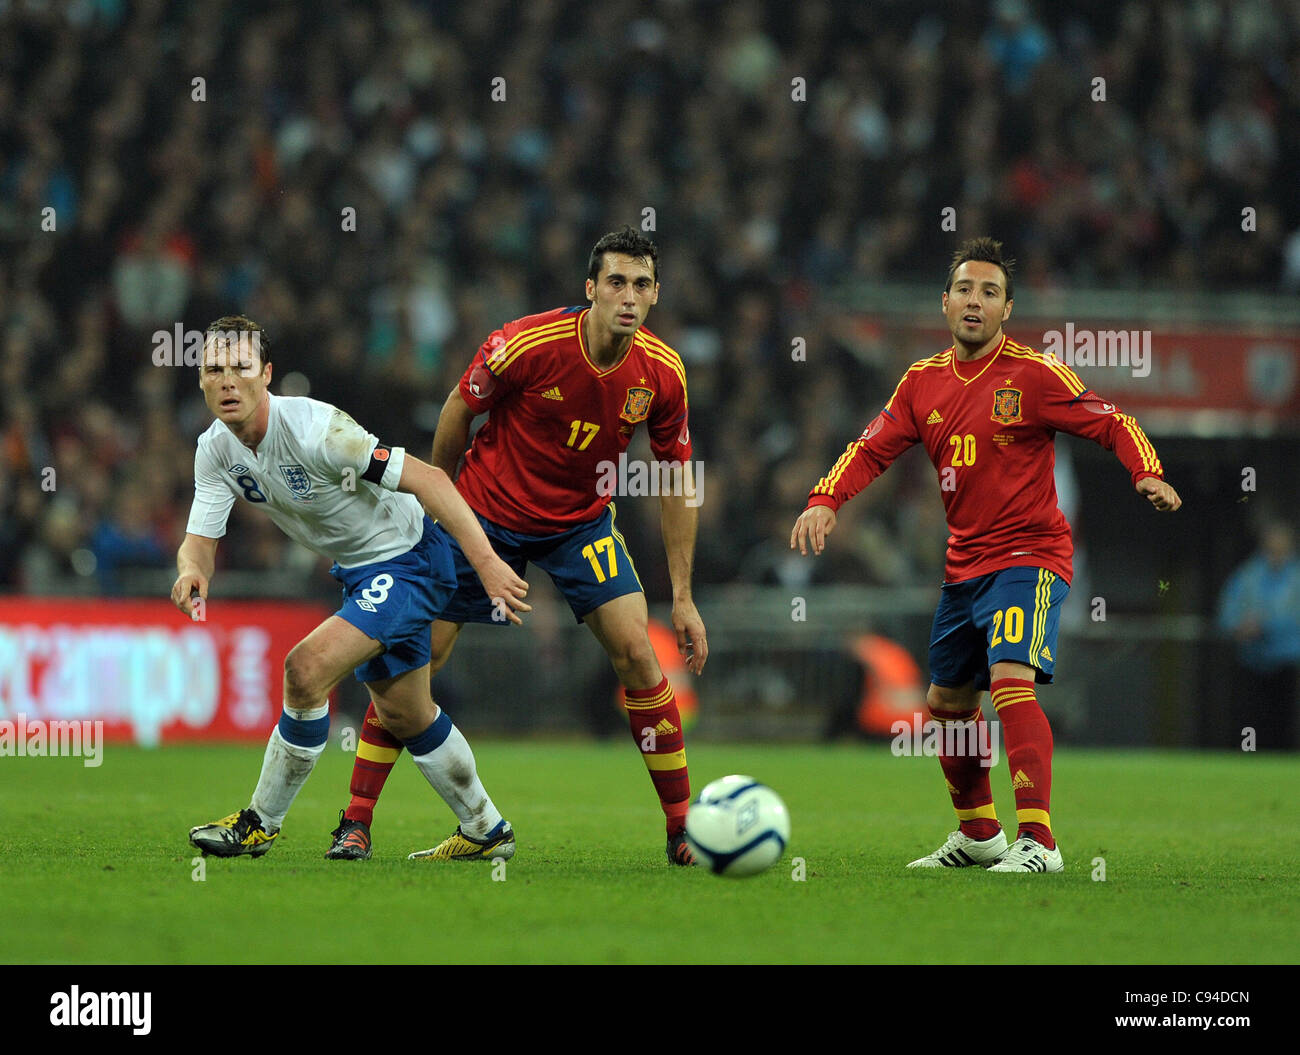 spain vs england - photo #30